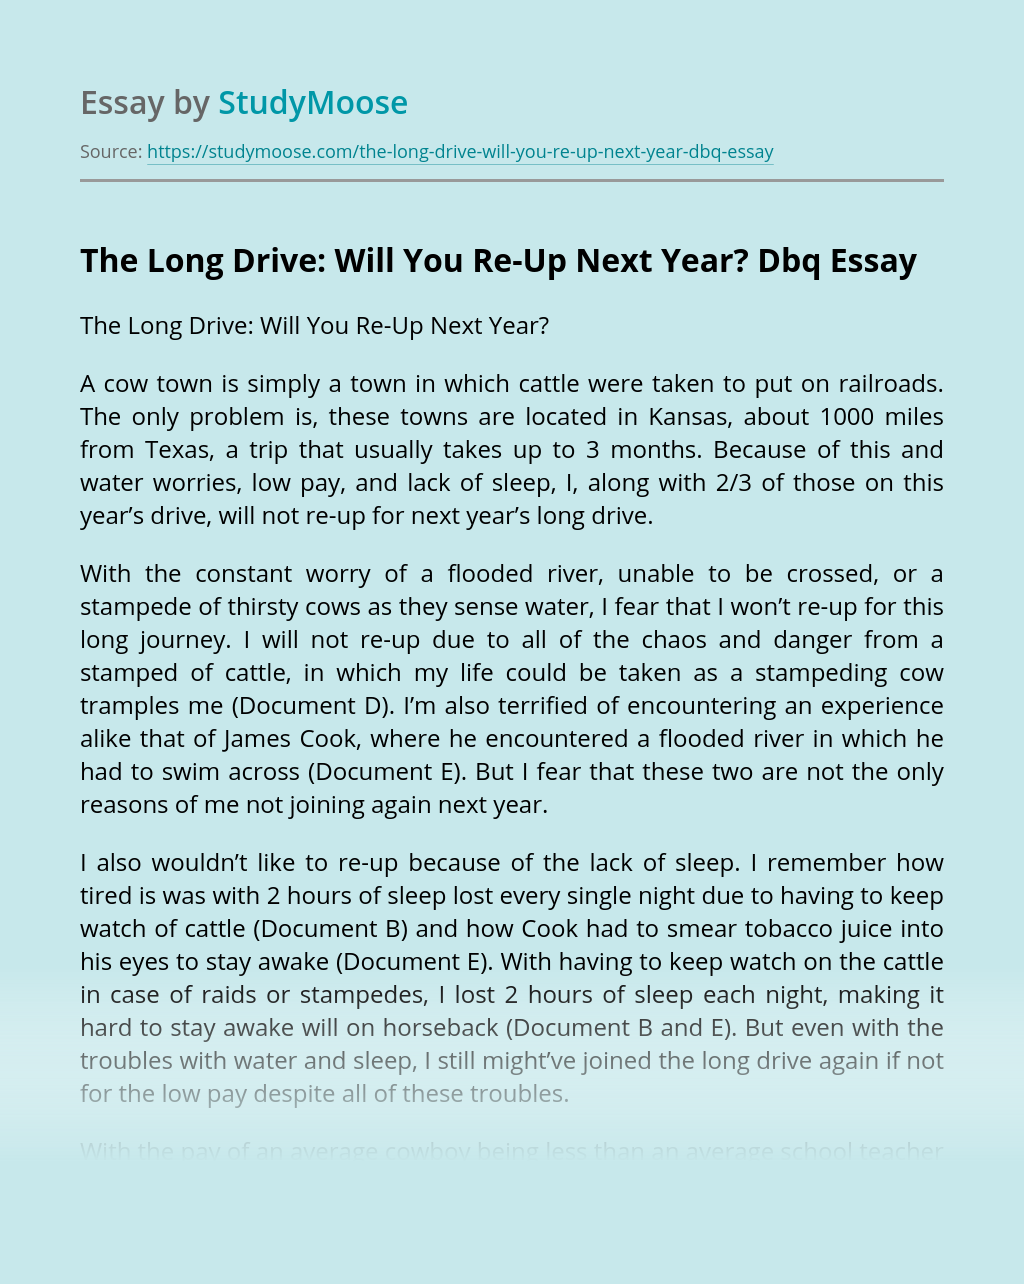 The Long Drive: Will You Re-Up Next Year?